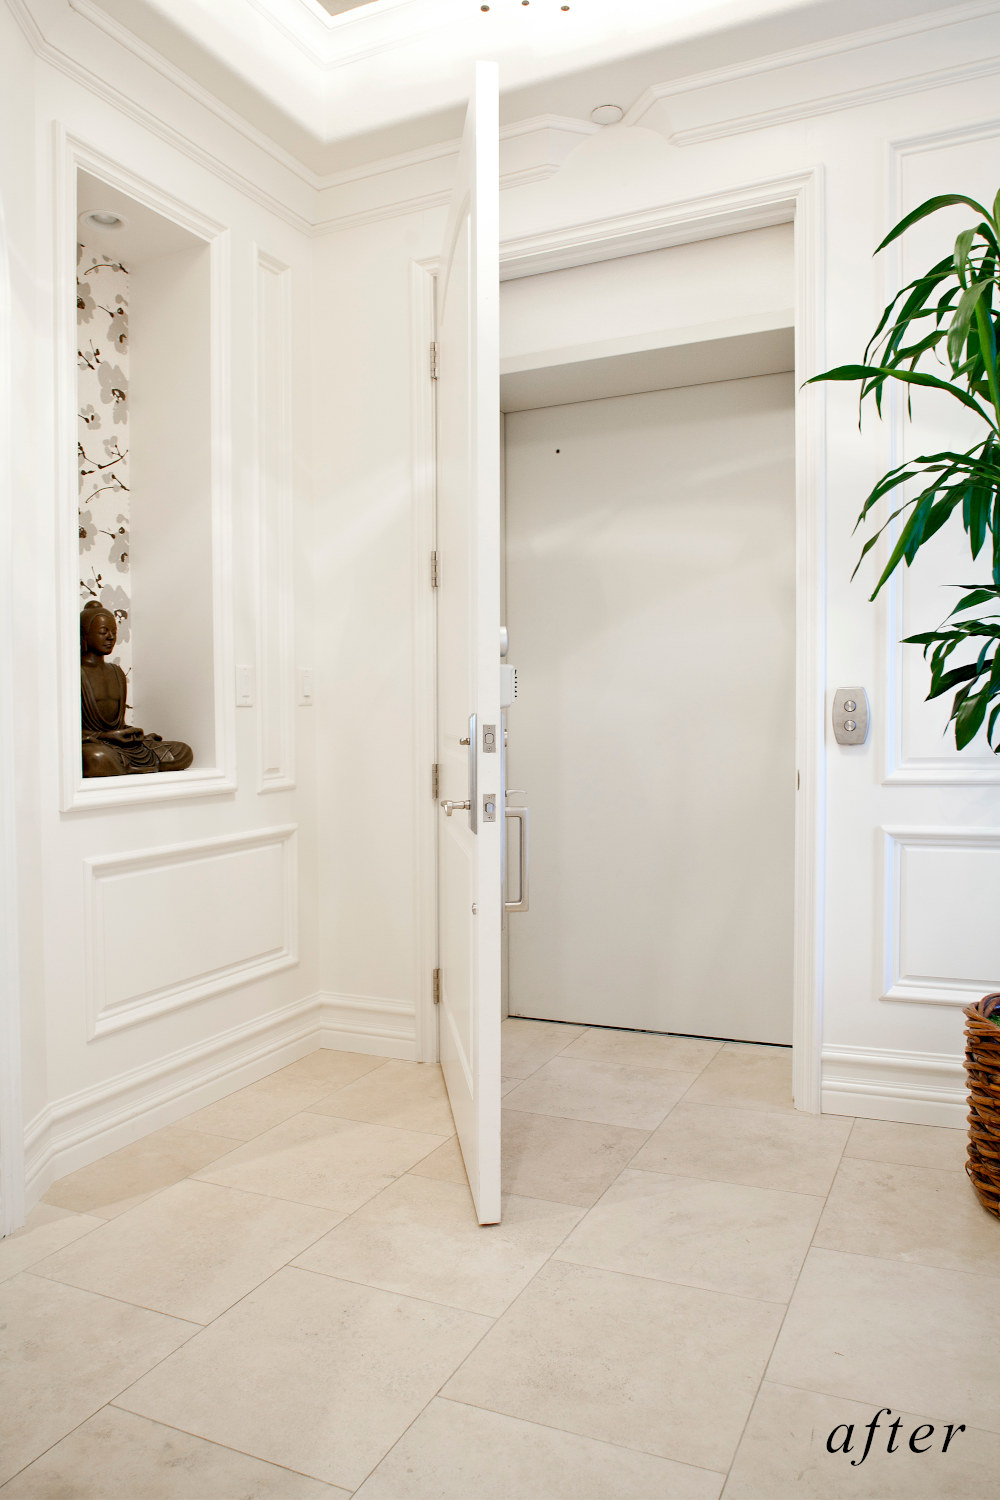 After remodel image: home elevator door with white wood molding, white wood paneling surround.